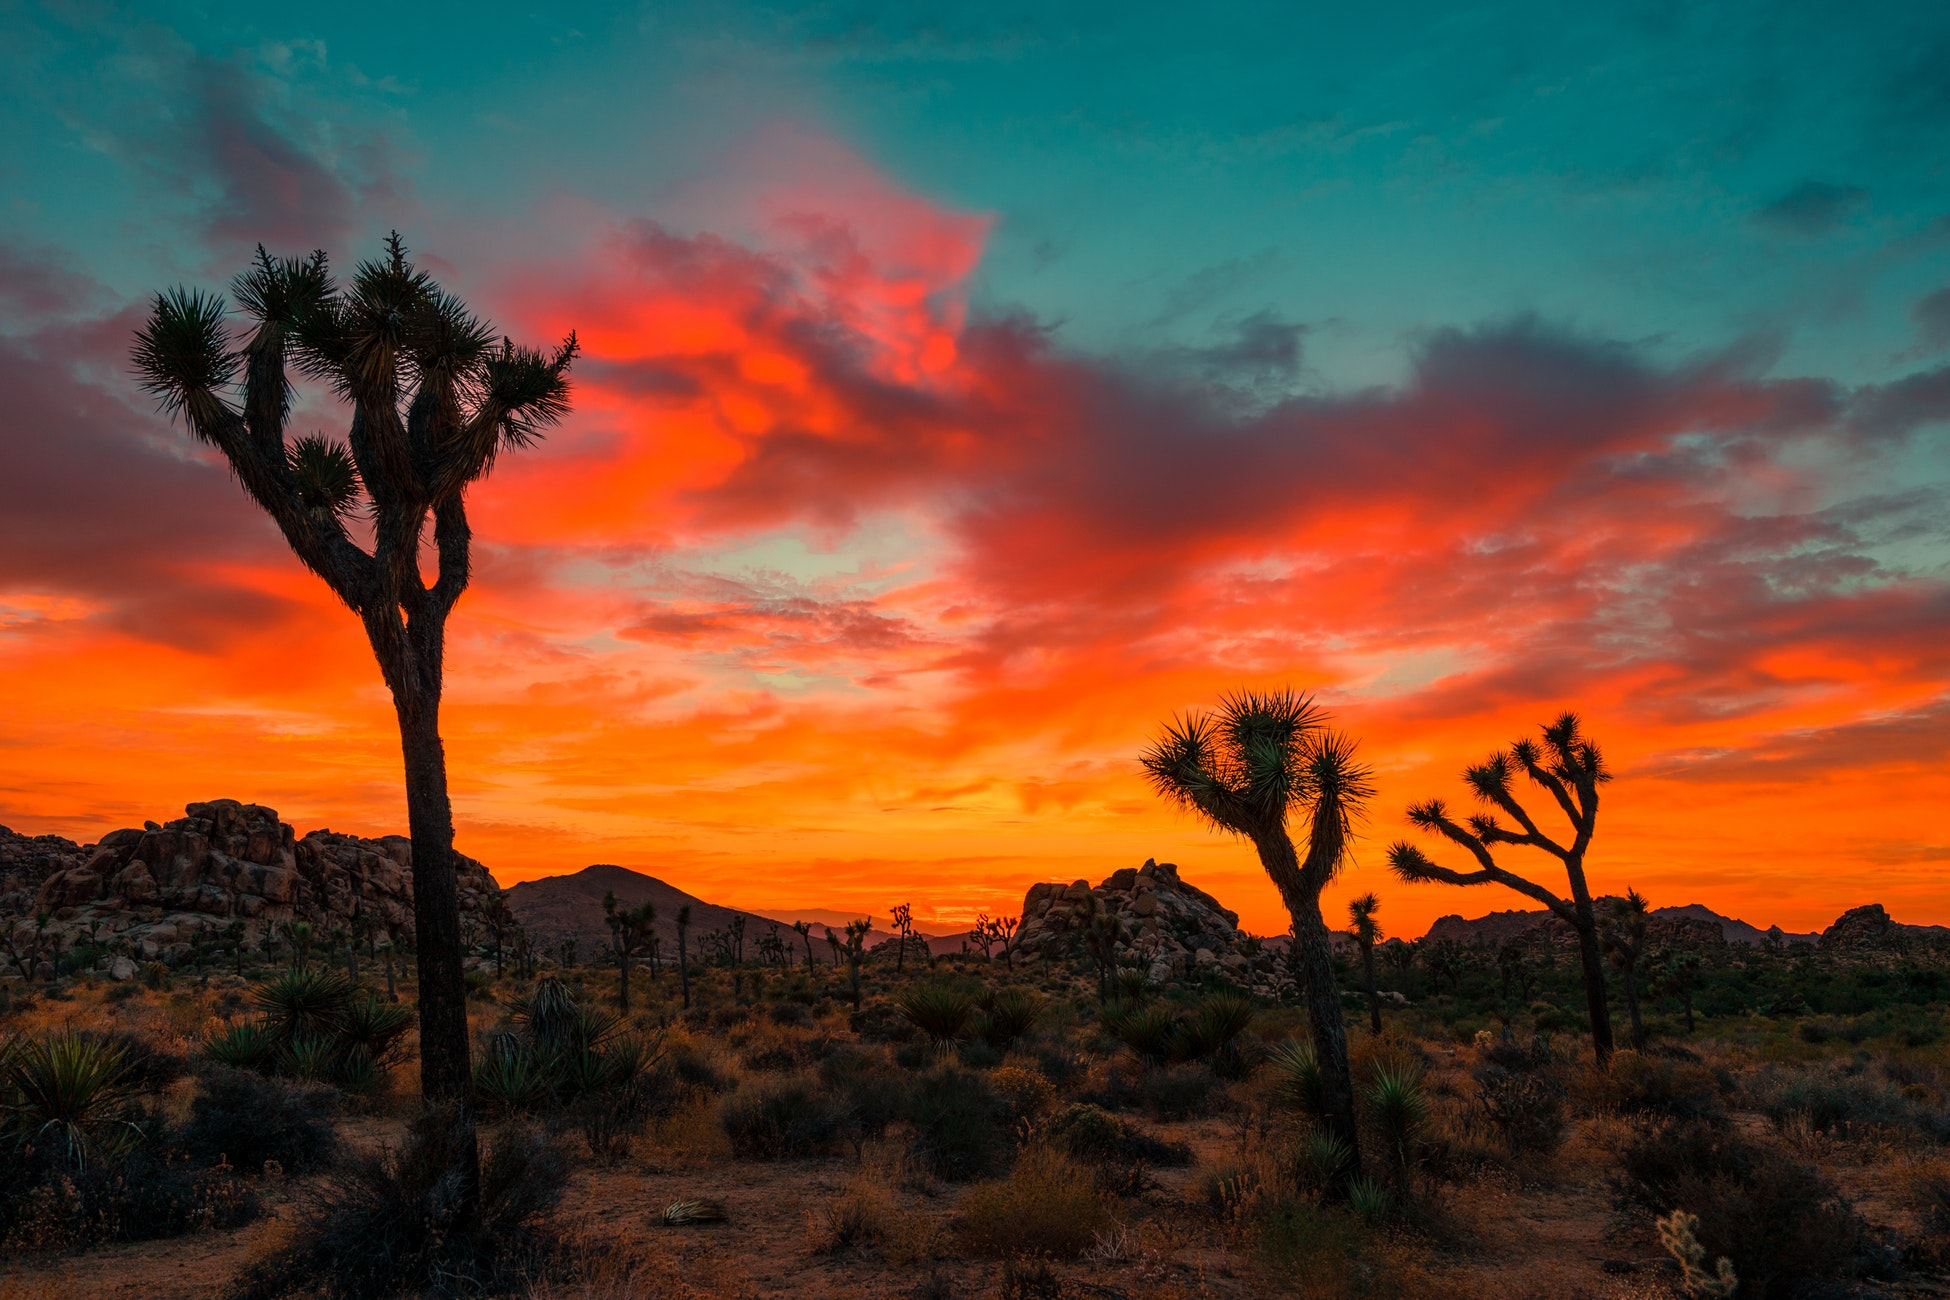 Joshua Tree National Park is known for its sunsets.